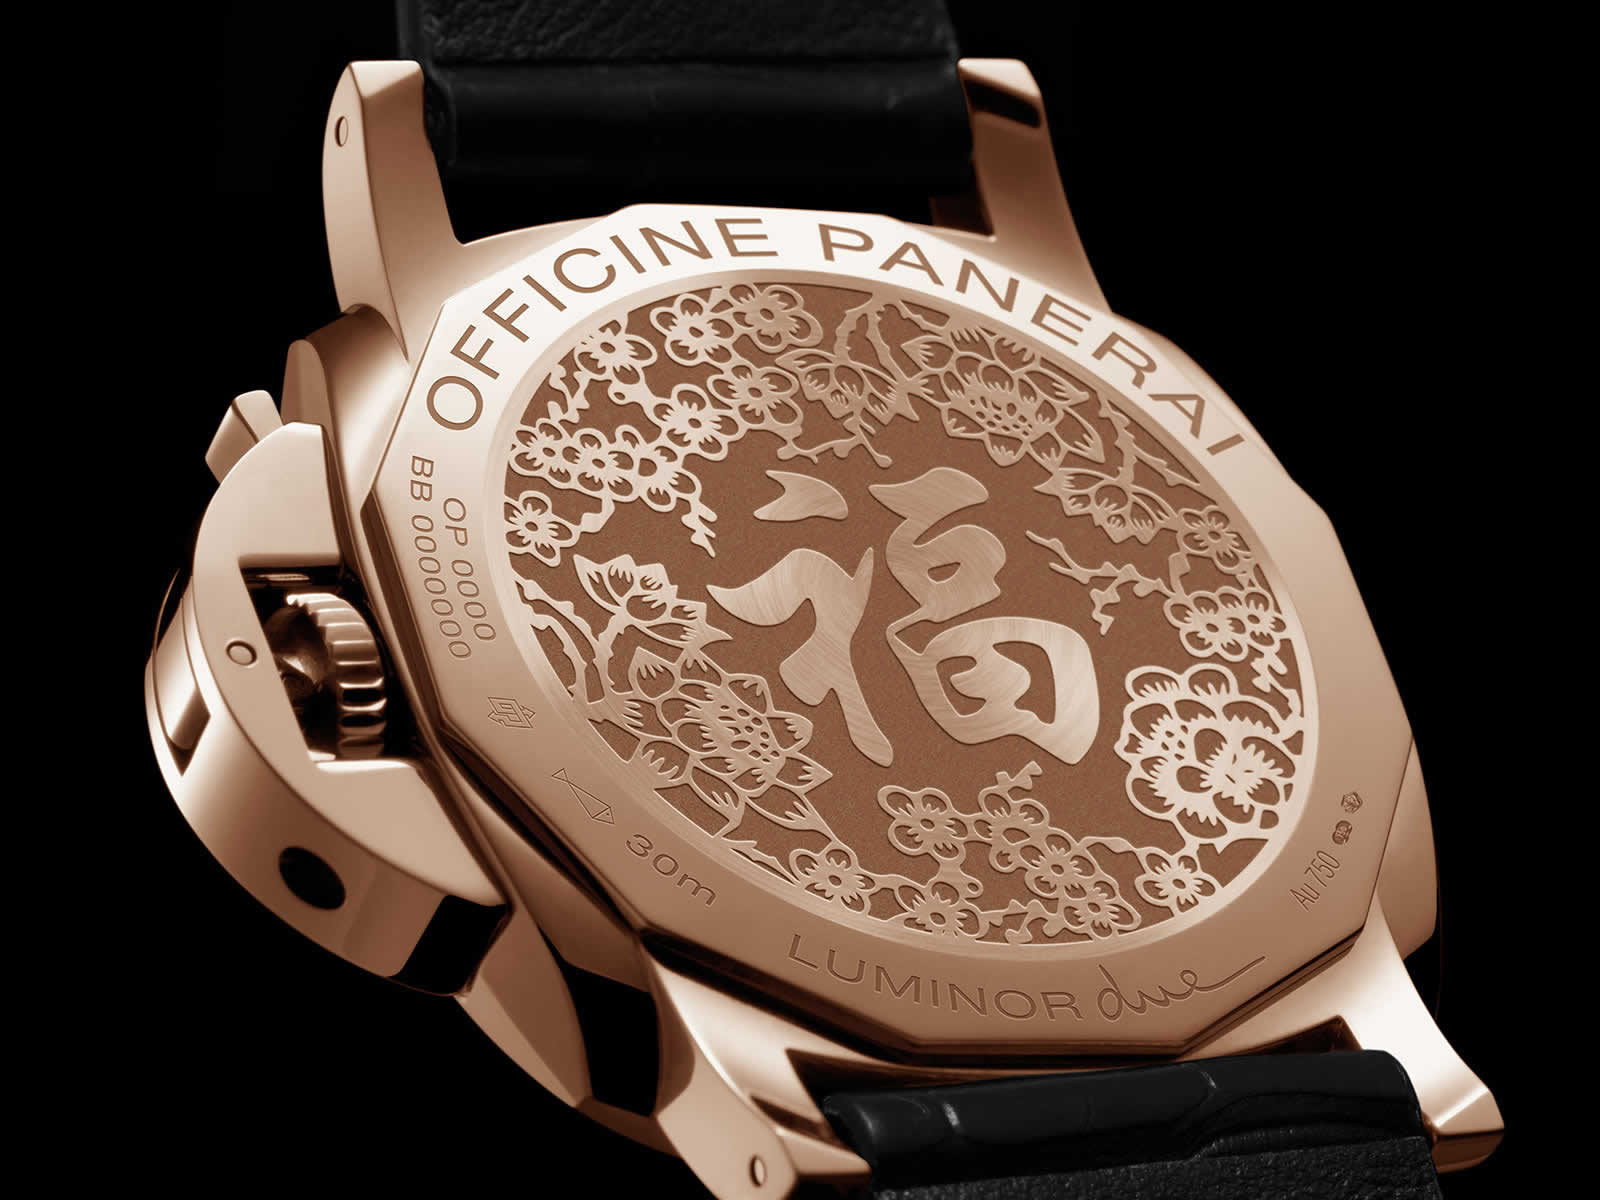 Panerai-Luminor-Due-3-Days-Automatic-Oro-Rosso-Pam00908-Sihh2018-1.jpg